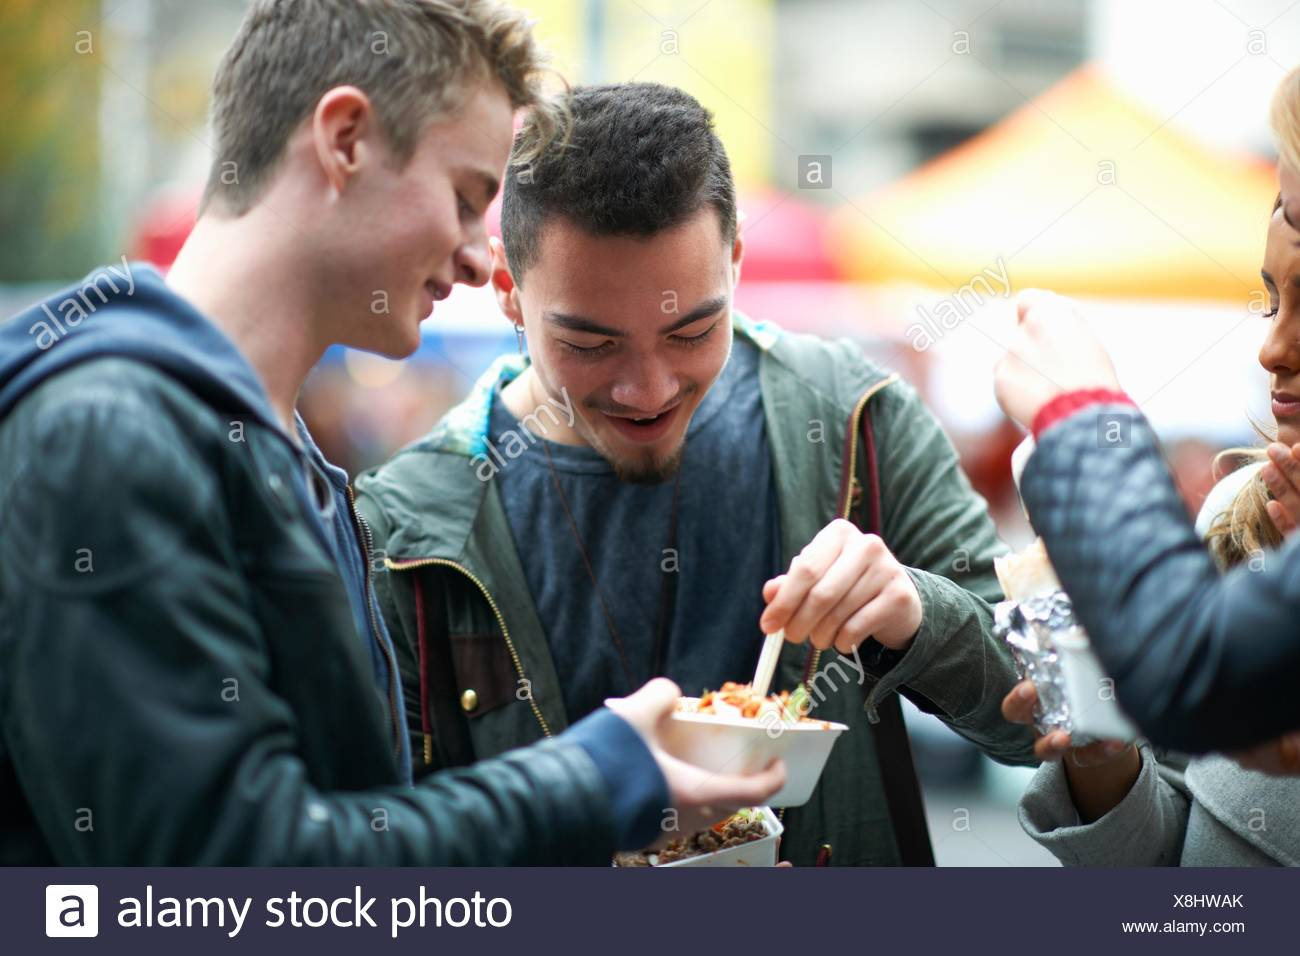 Group of young adults eating takeaway food, outdoors - Stock Image